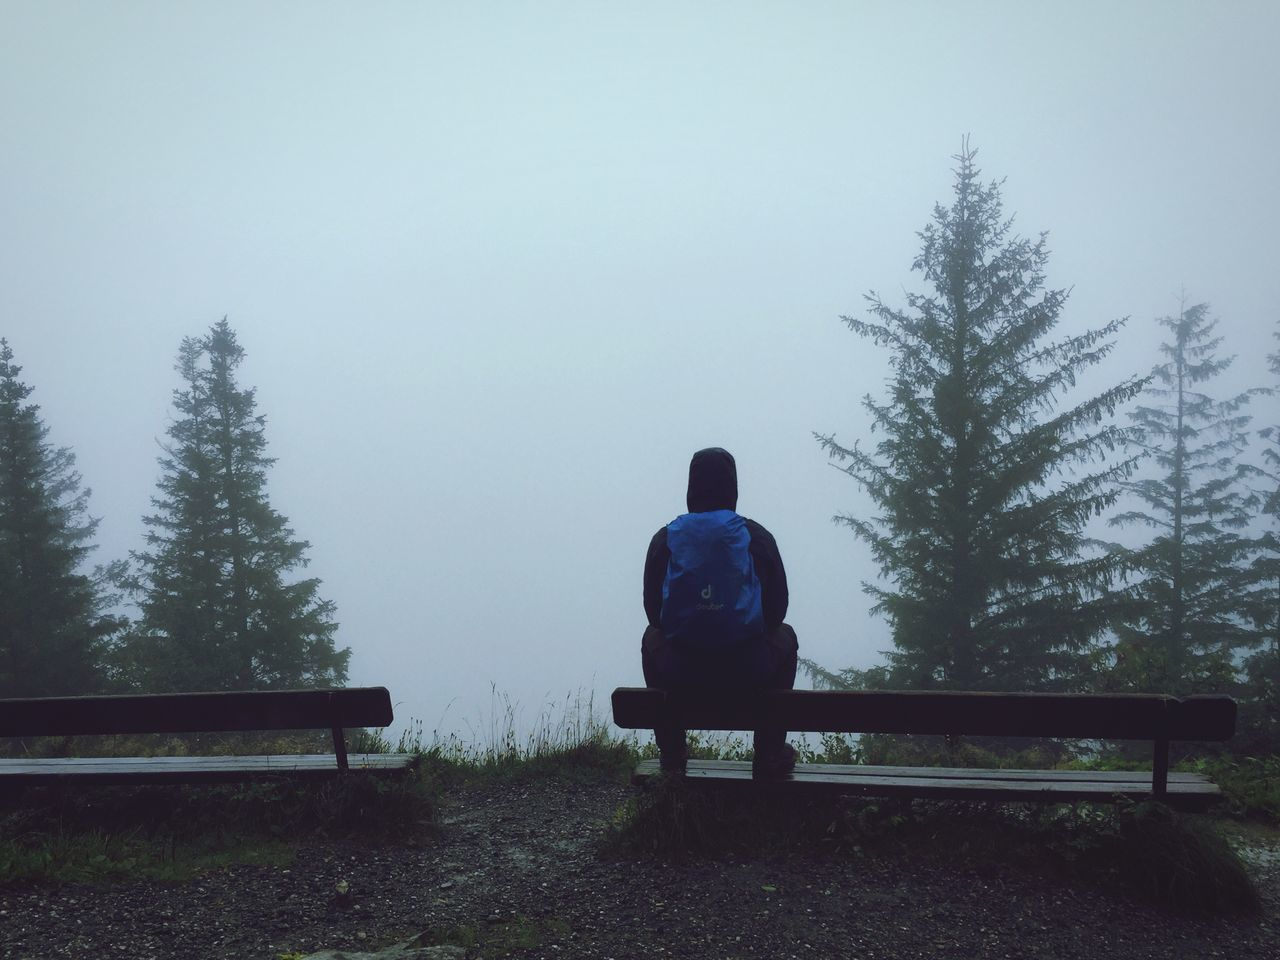 Norway Foggy Hike Benches Loneliness Hilltop Lost Peaceful Tranquility In Thought No Visibility Rear View Nature Weather Bench One Person Outdoors EyeEmNewHere EyeEmNewHere Live For The Story